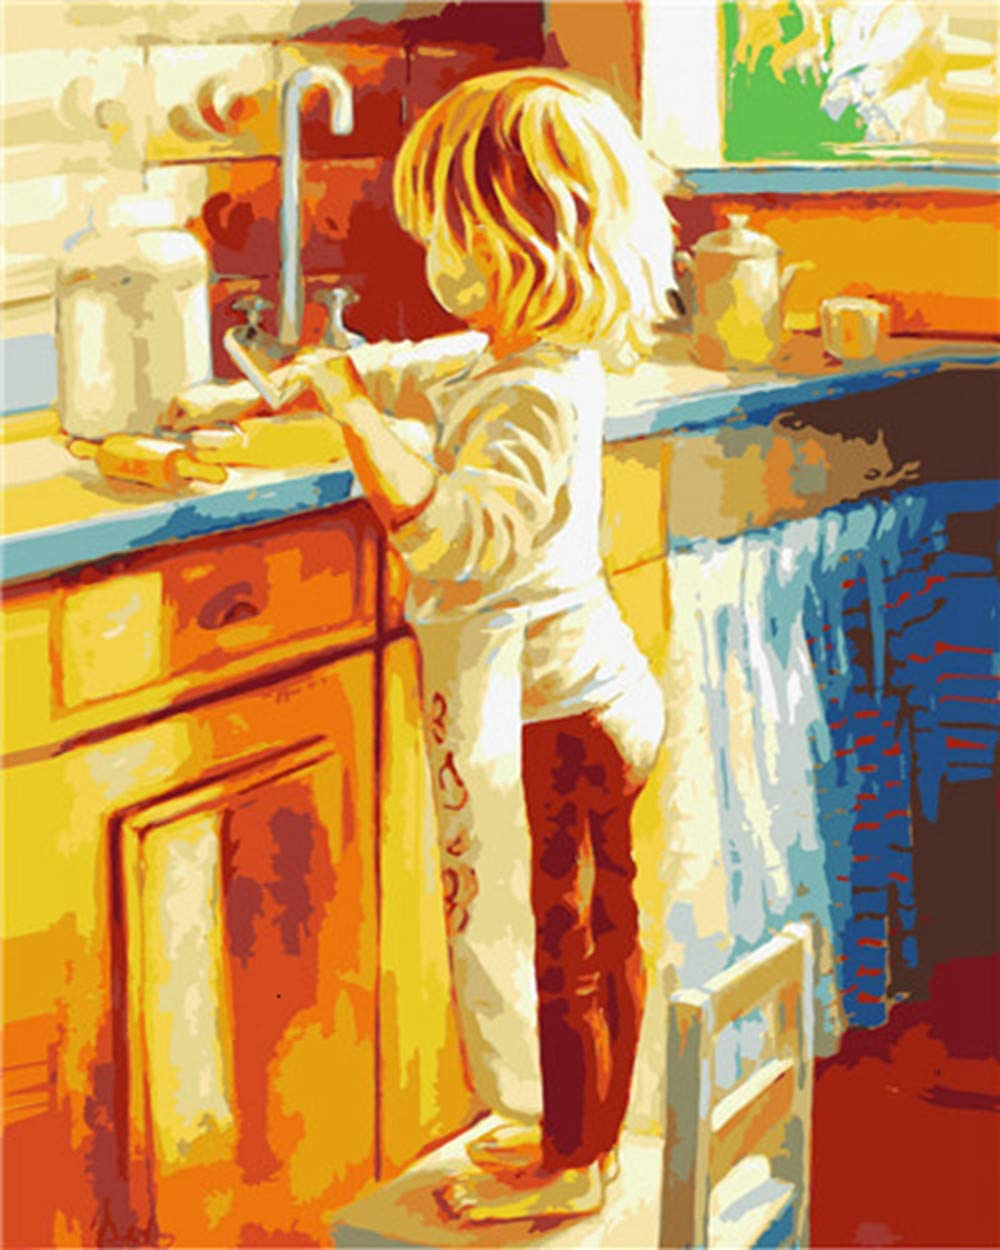 GTZXHNM DIY Acrylic Painting Kit for Beginner,Children Making Food Pictures DIY Oil Painting by Number Home Decoration Drawing On Canvas Handmade Handpainted Art Gift,Frameless